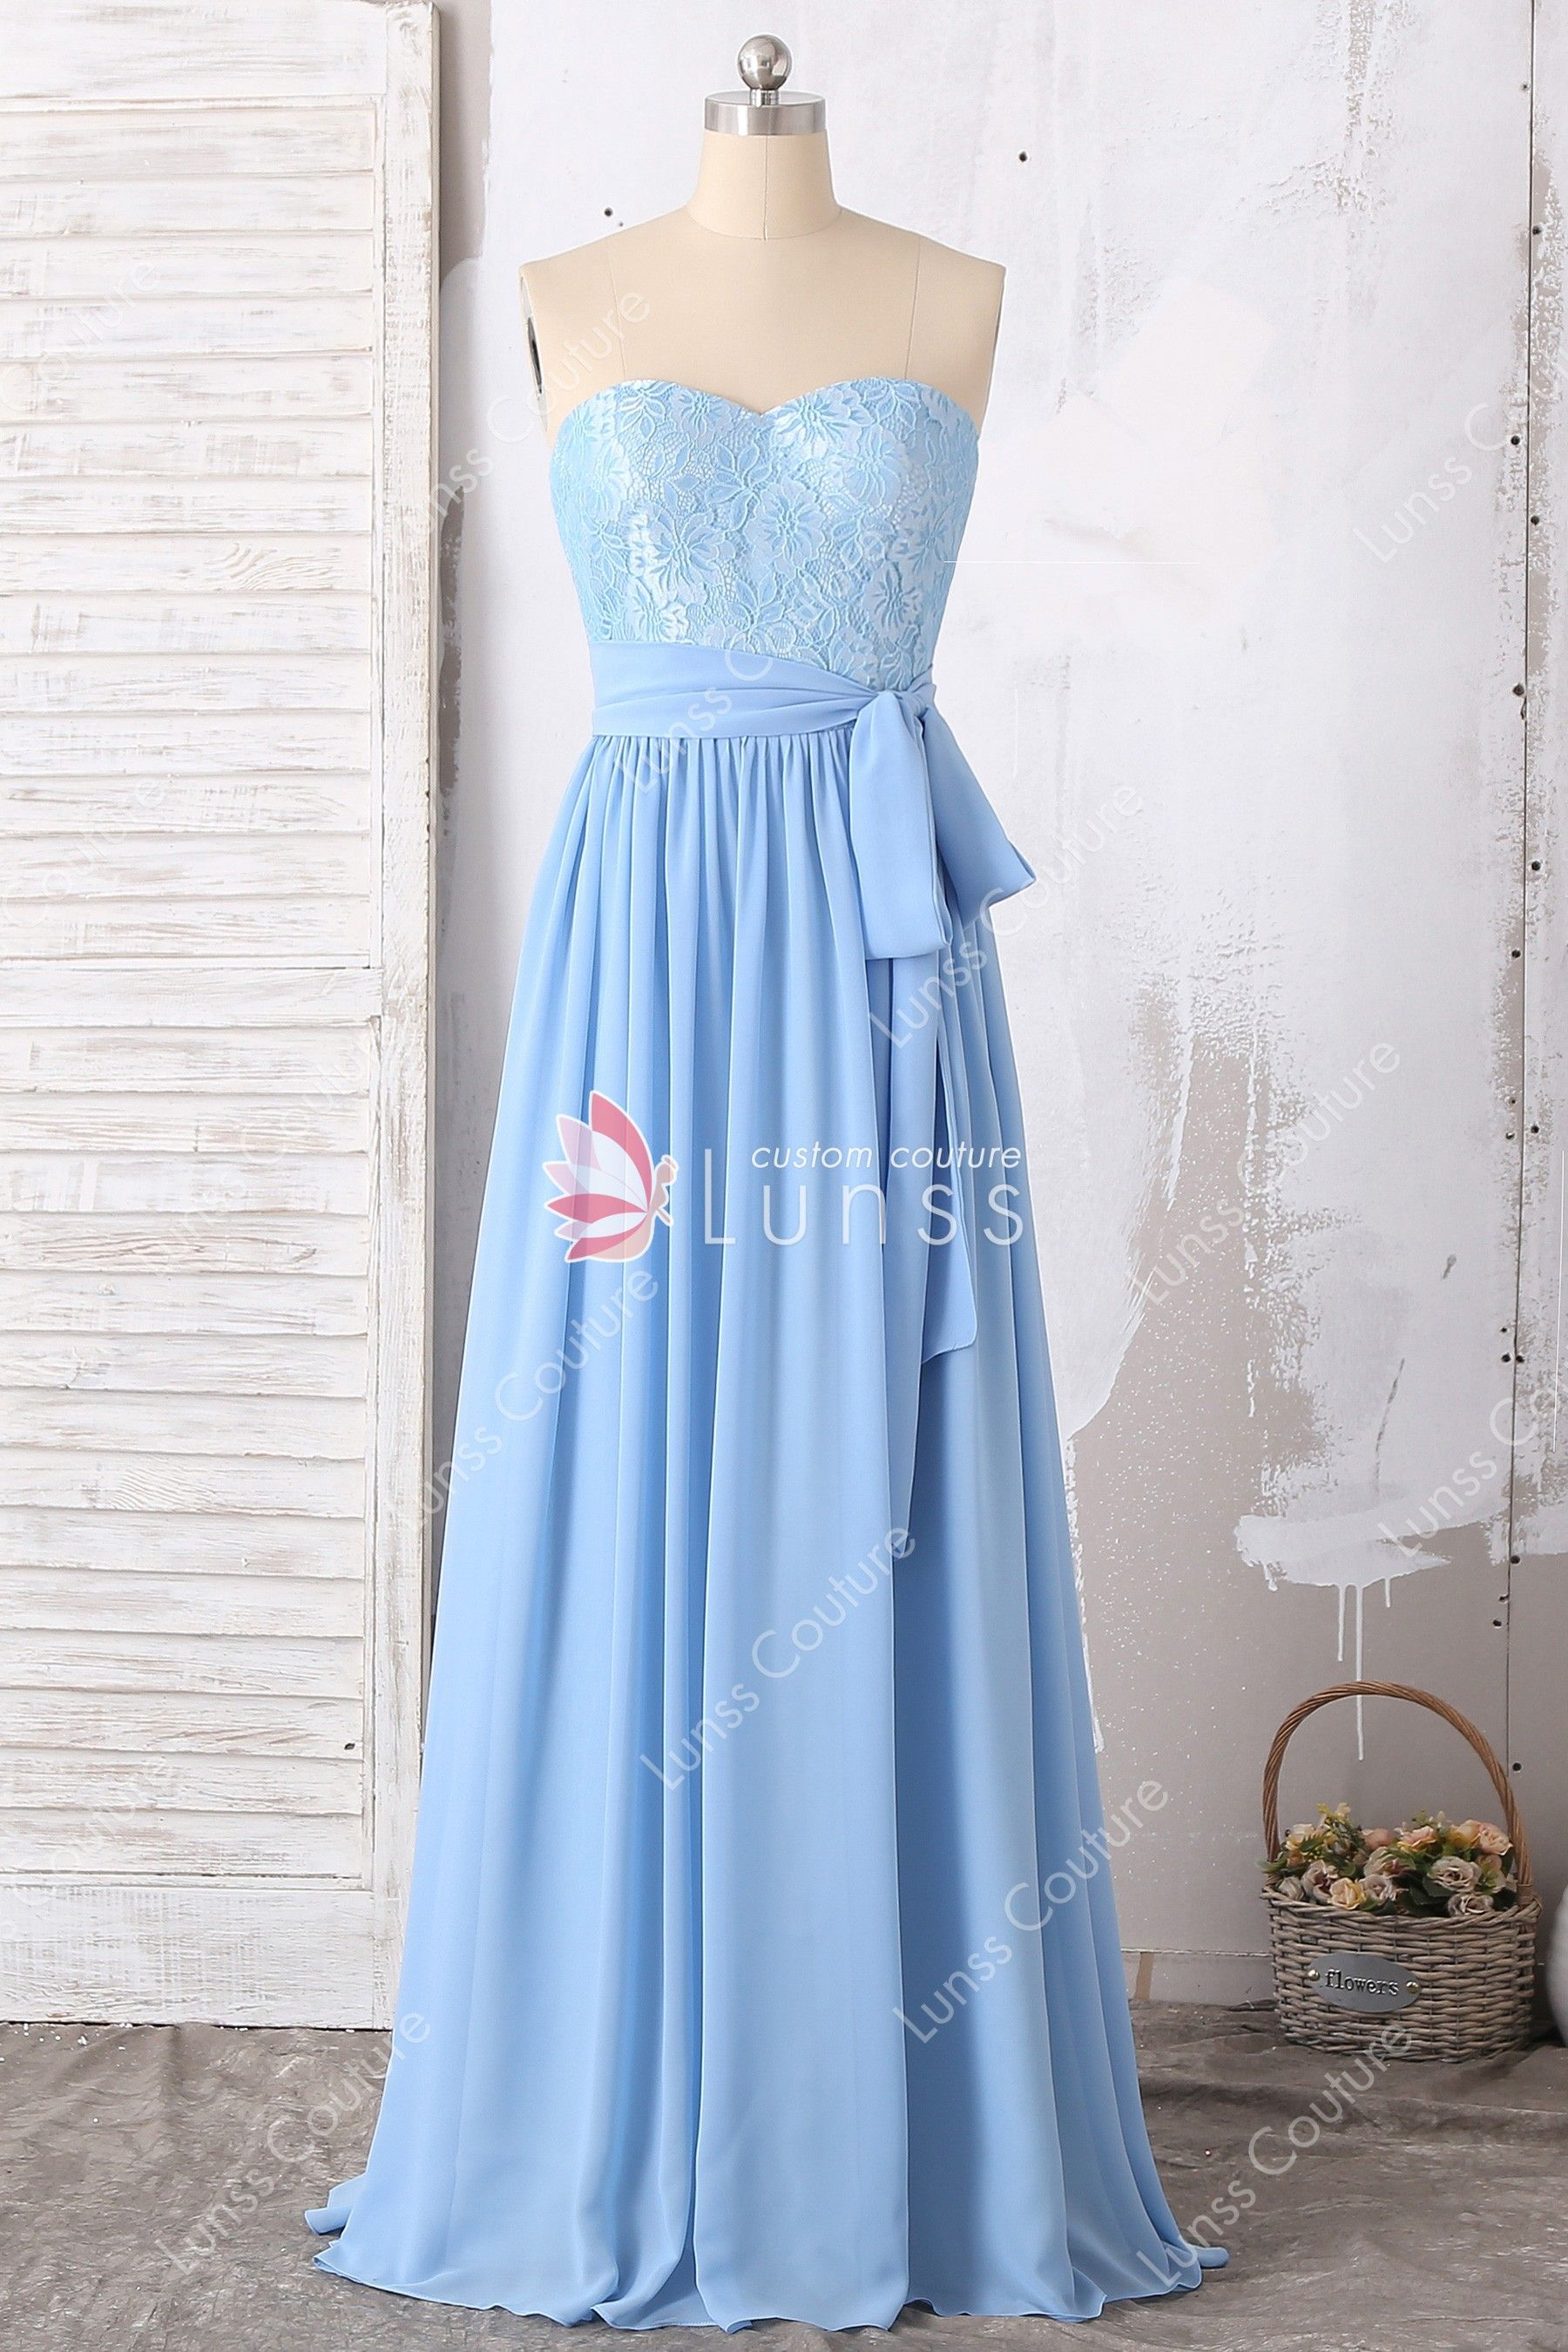 dc5d38d7d3cd Sky Blue Strapless Sweetheart Lace Flowy Chiffon Floor-length Bridesmaid/ Prom  Dress